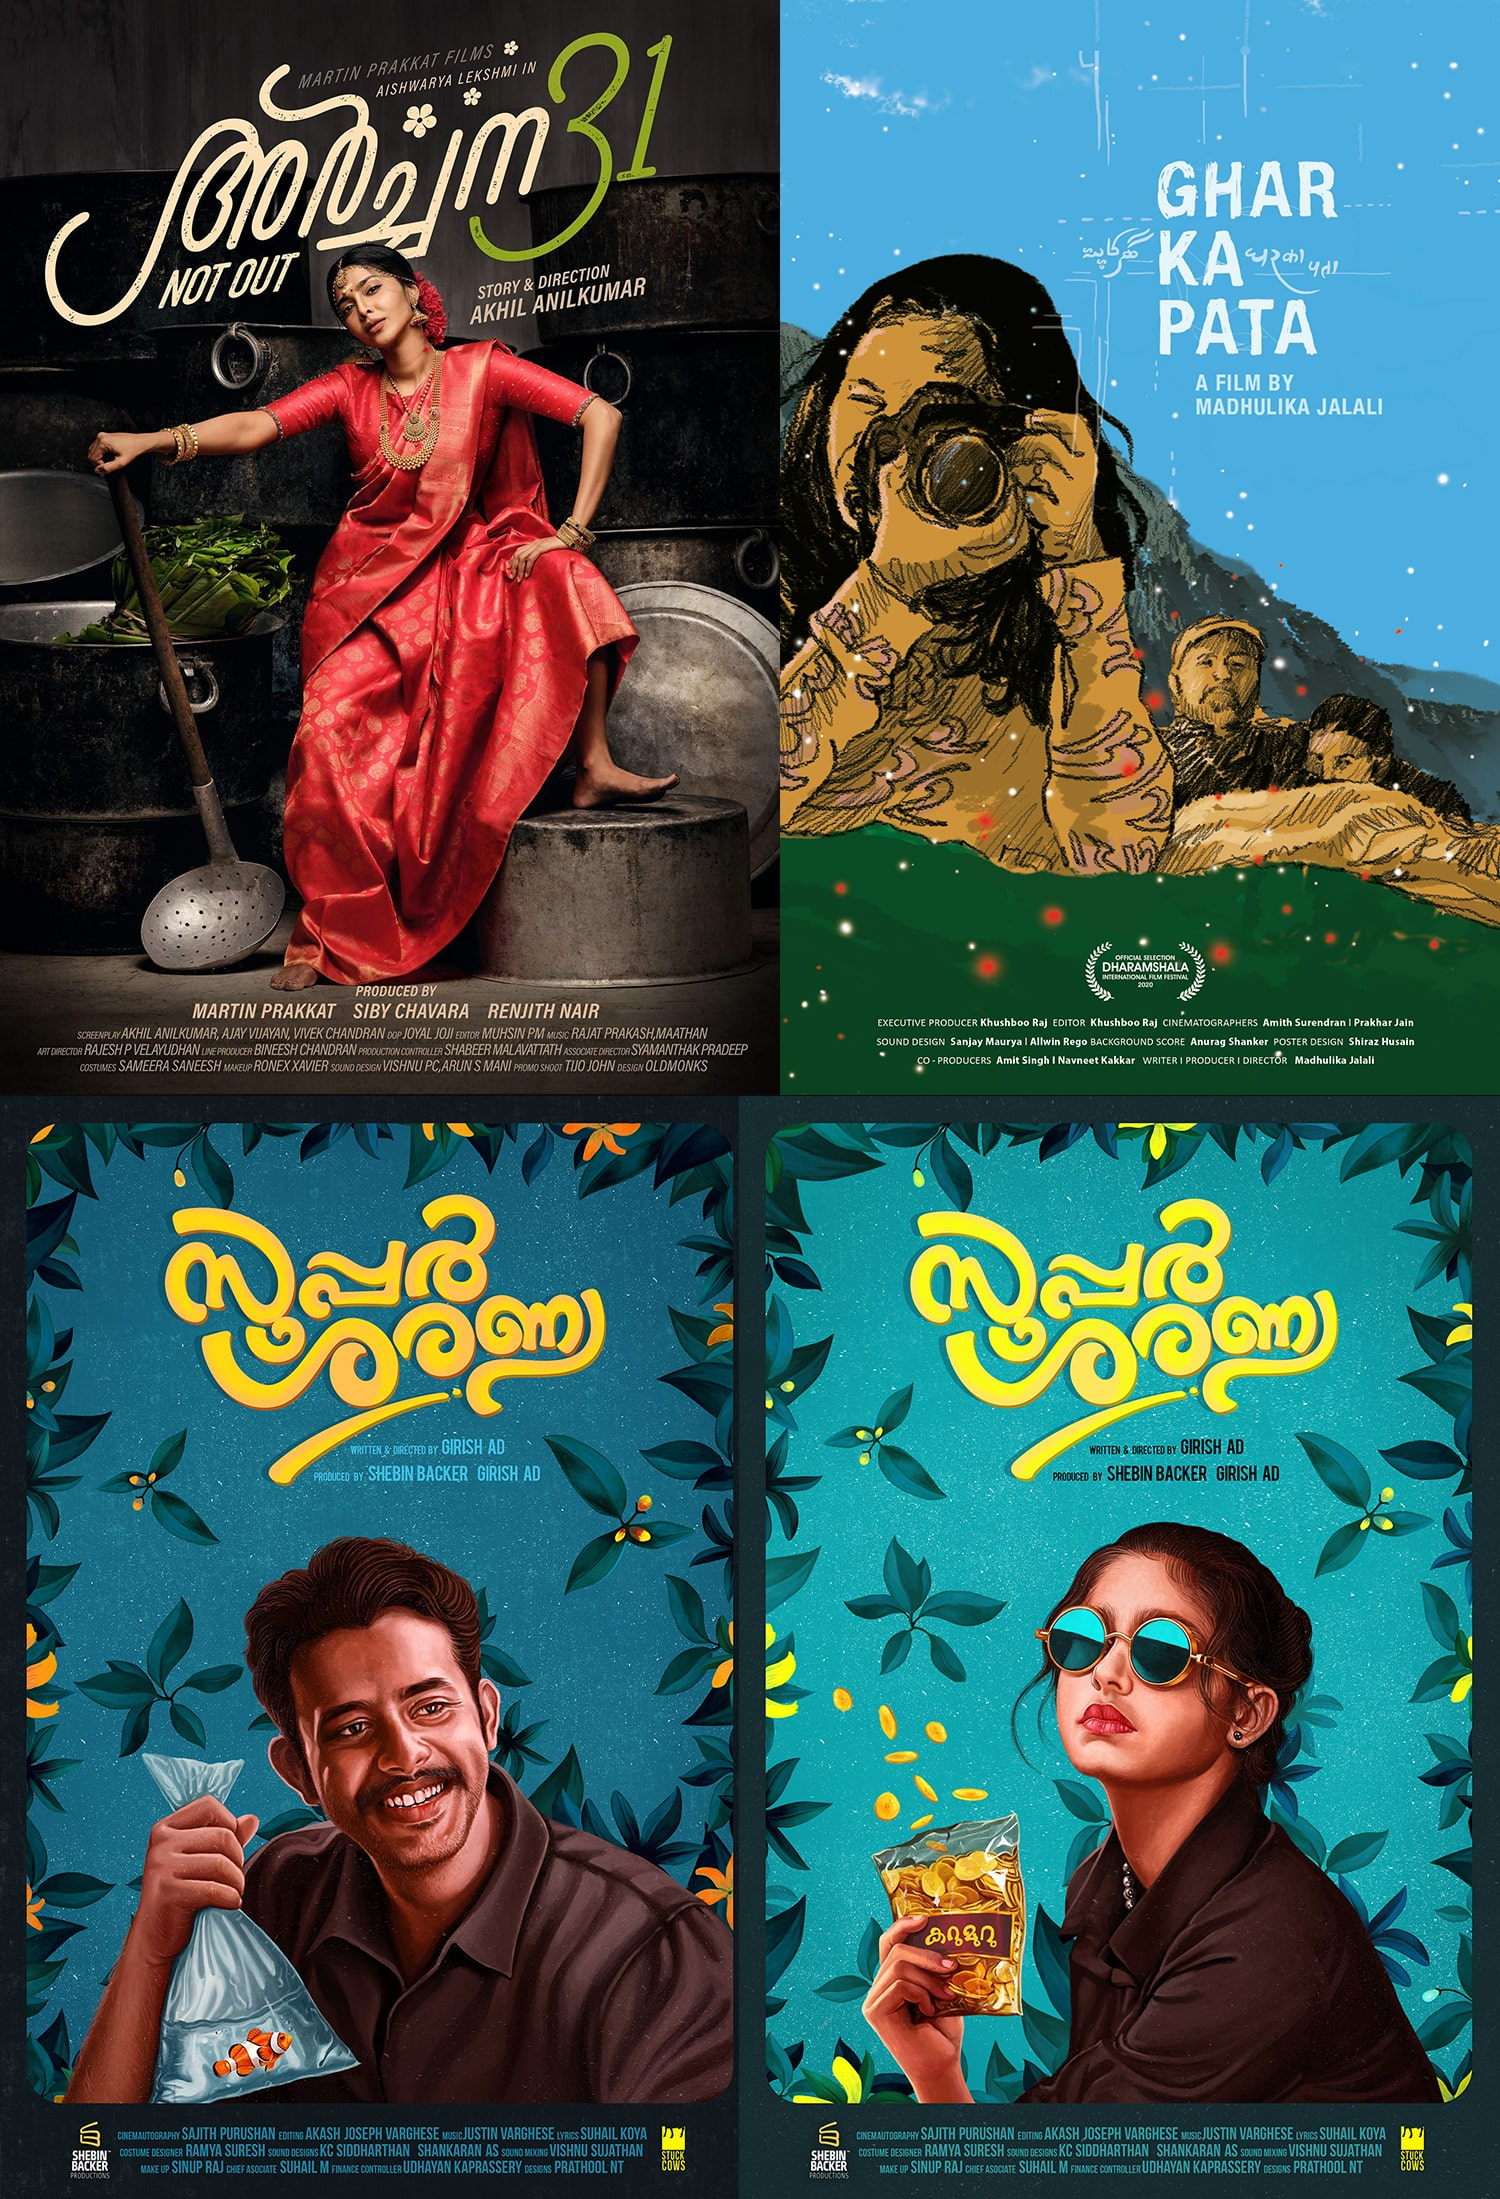 Posterphilia The Best Indian Film Posters Of 2020 Ranked